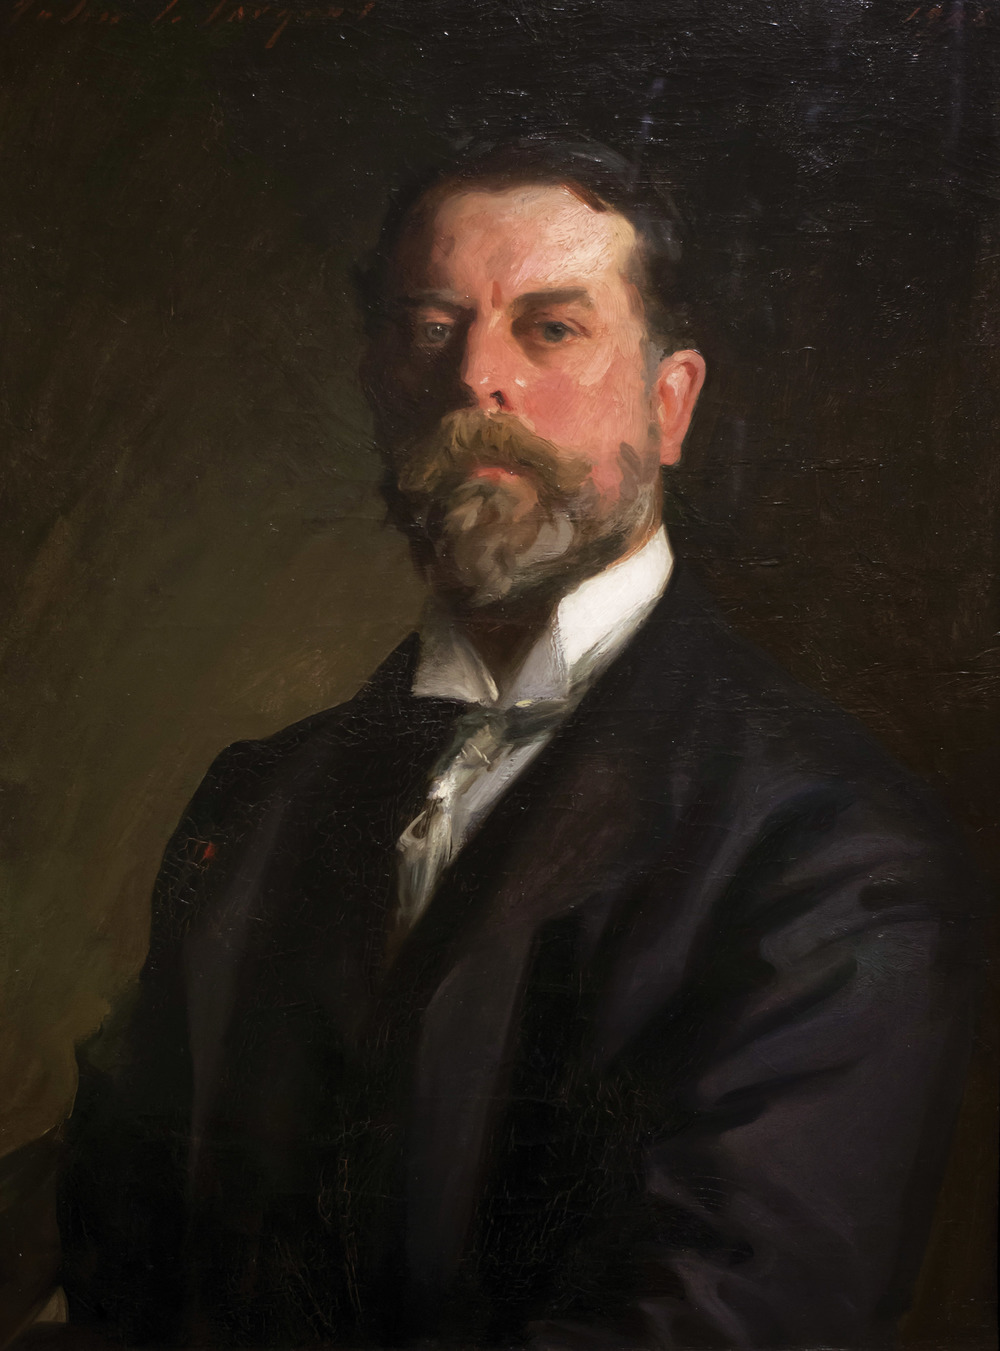 Though Corrigan boasts a diverse art aesthetic, classical artist John Singer Sargent currently takes the spotlight.